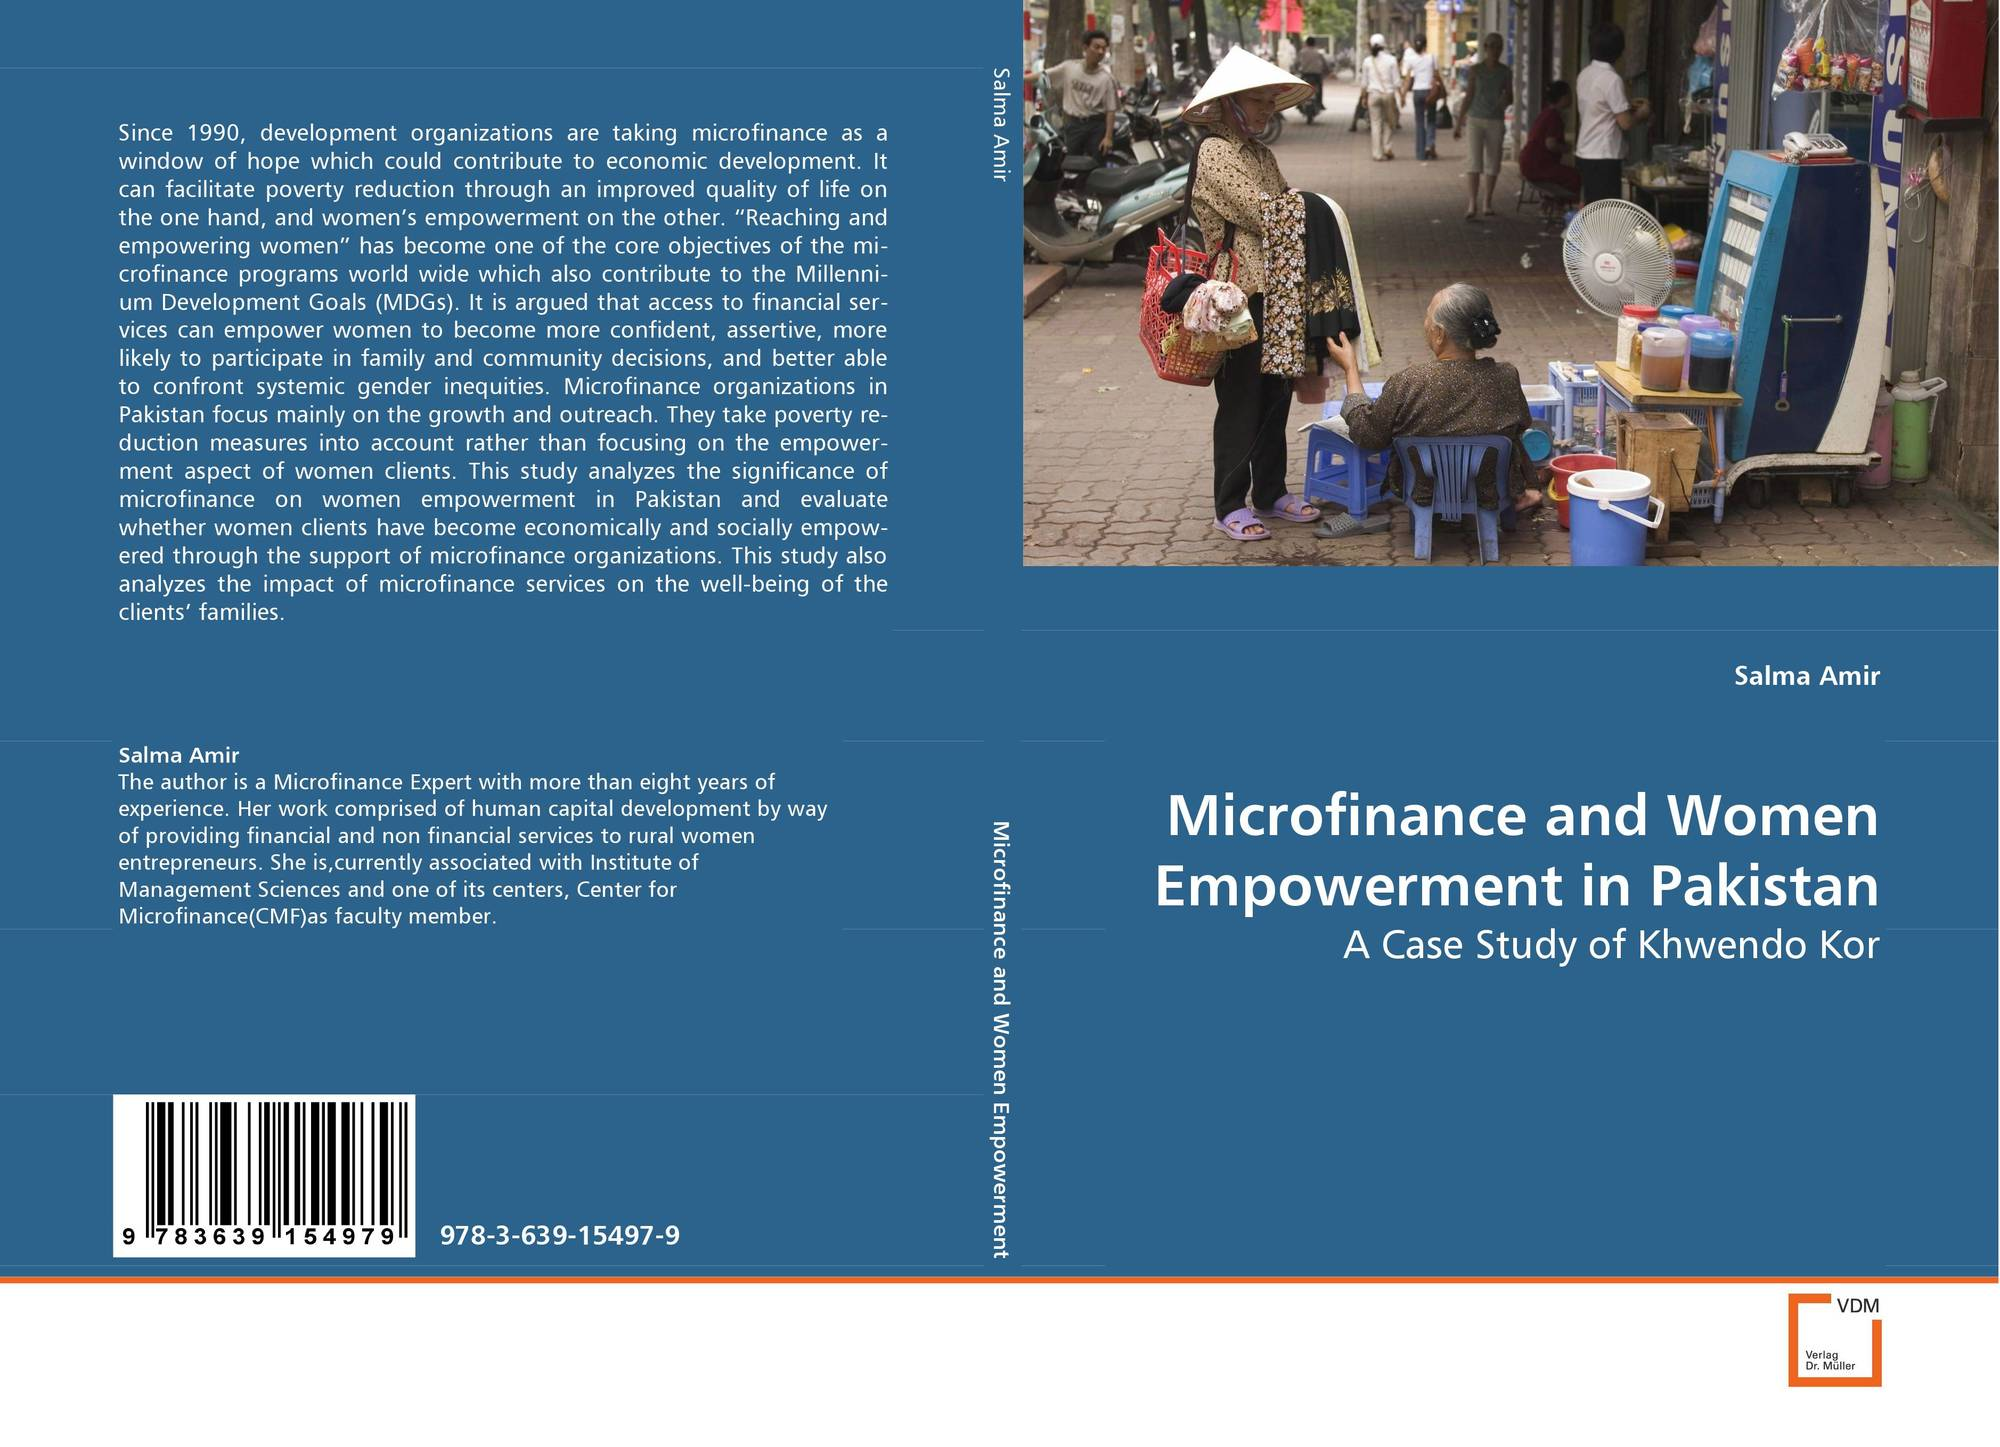 women empowerment and microfinance in pakistan This research examines the relationship between microfinance, women's empowerment and natural disasters in khyber pakhtunkhwa (kp), a northwestern province of pakistan.